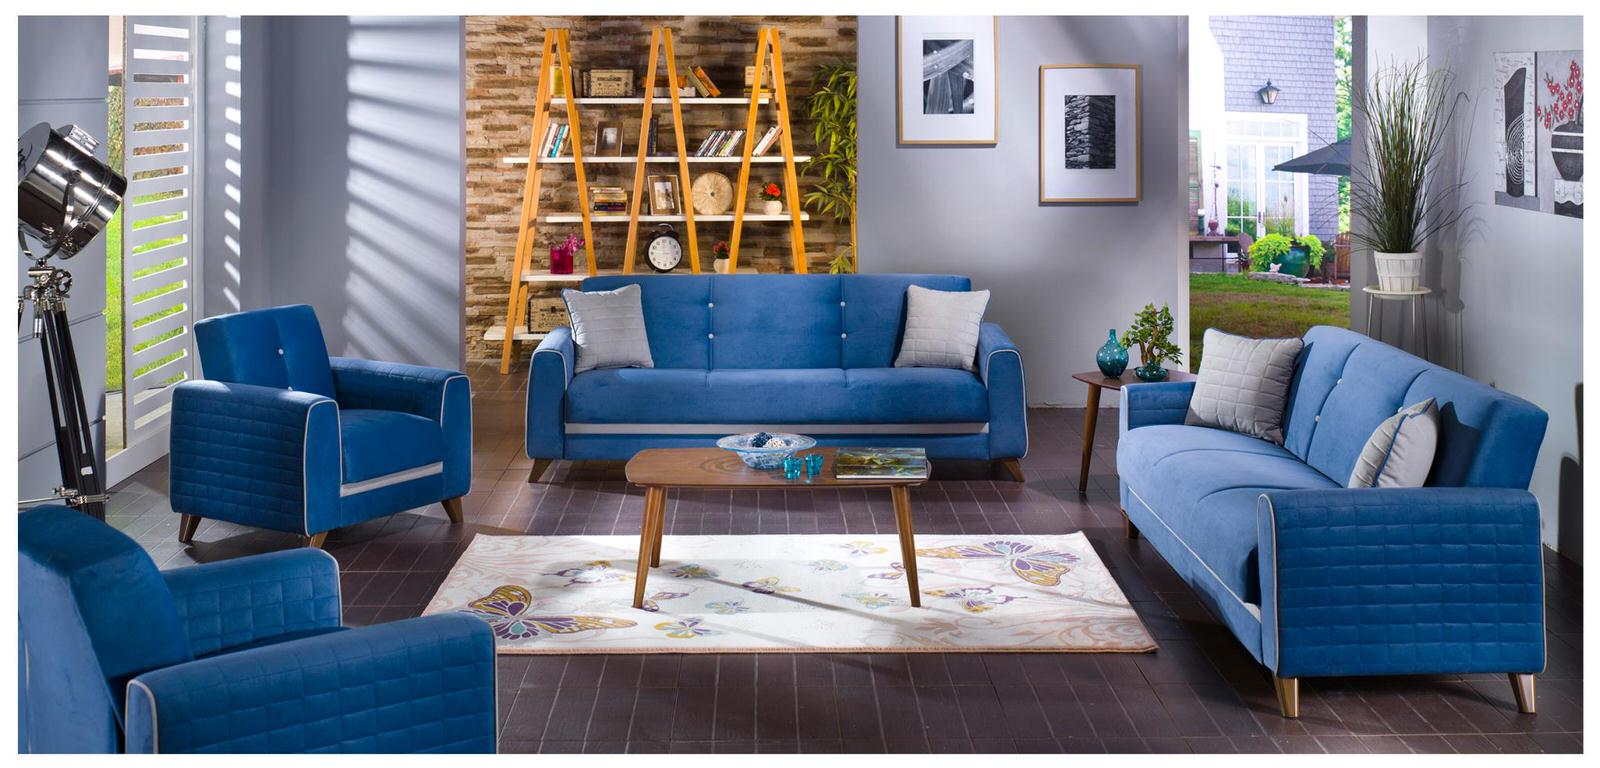 l tufted sectional couches wooden velvet inexpensive button sleeper of chaise sectionals lounge shape frame upholstery adorable captivating reclining backrest navy trim full sofas nailhead sofa blue couch size design material